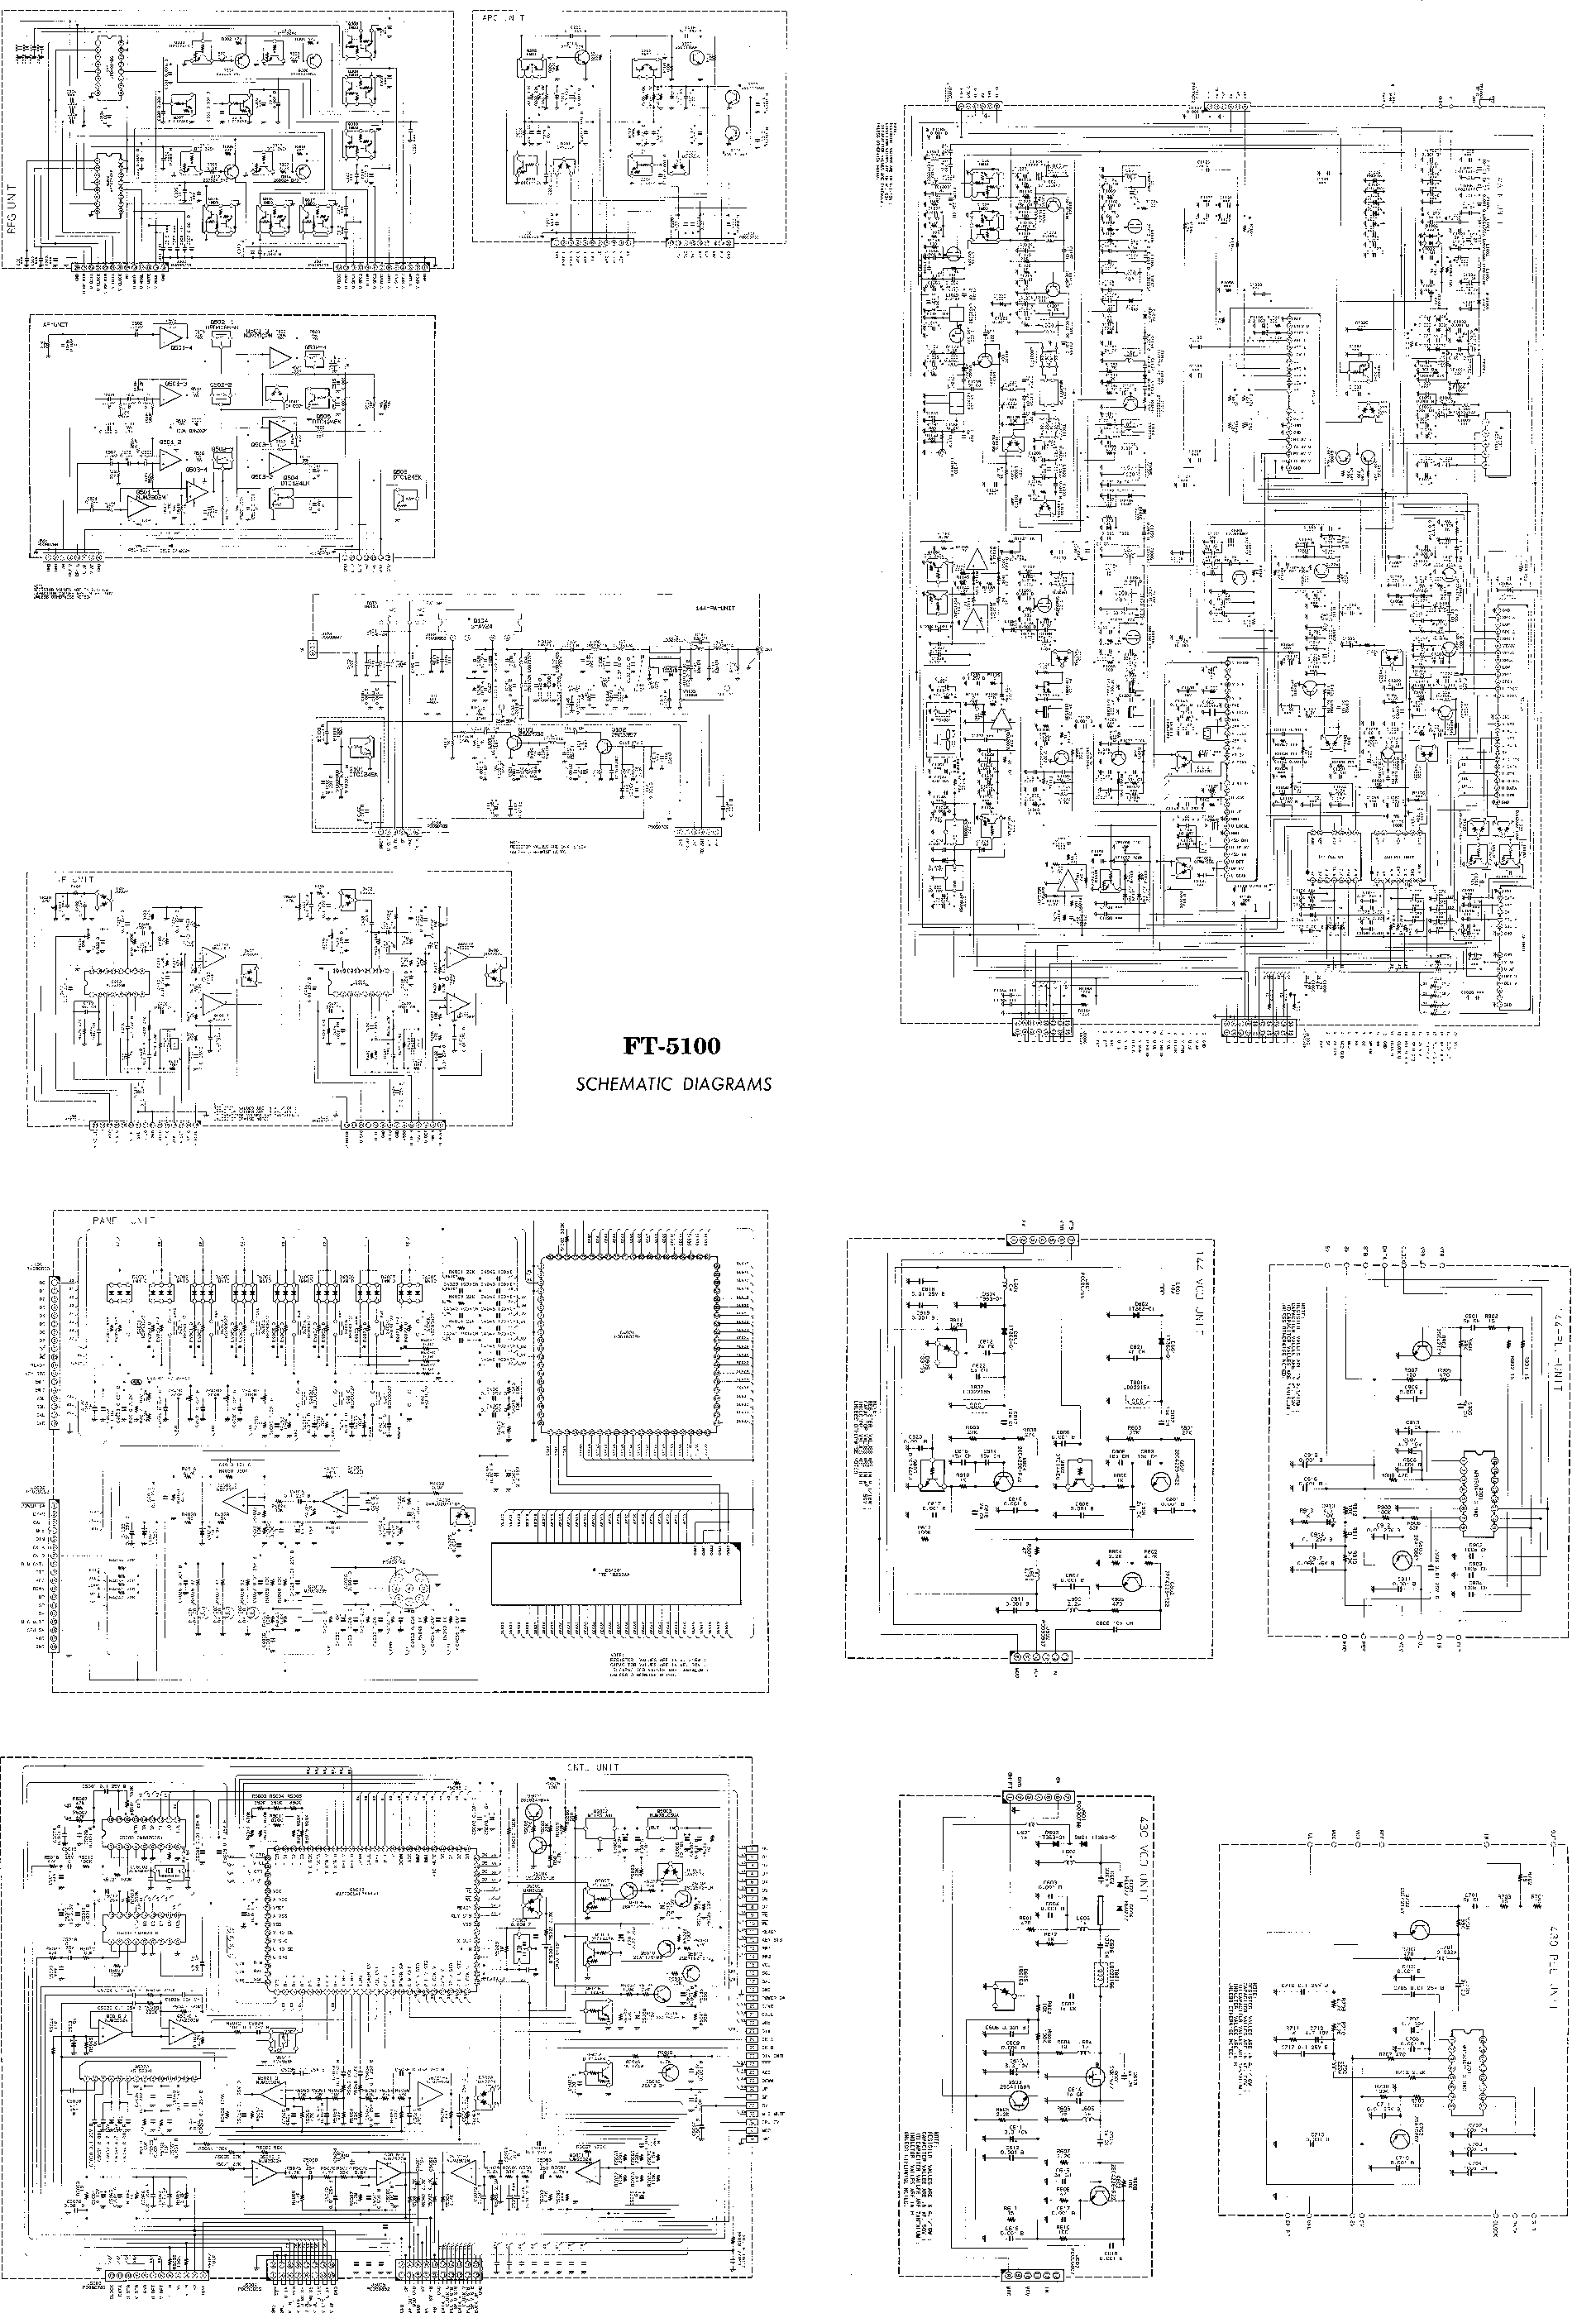 YAESU FT-5100 Service Manual download, schematics, eeprom